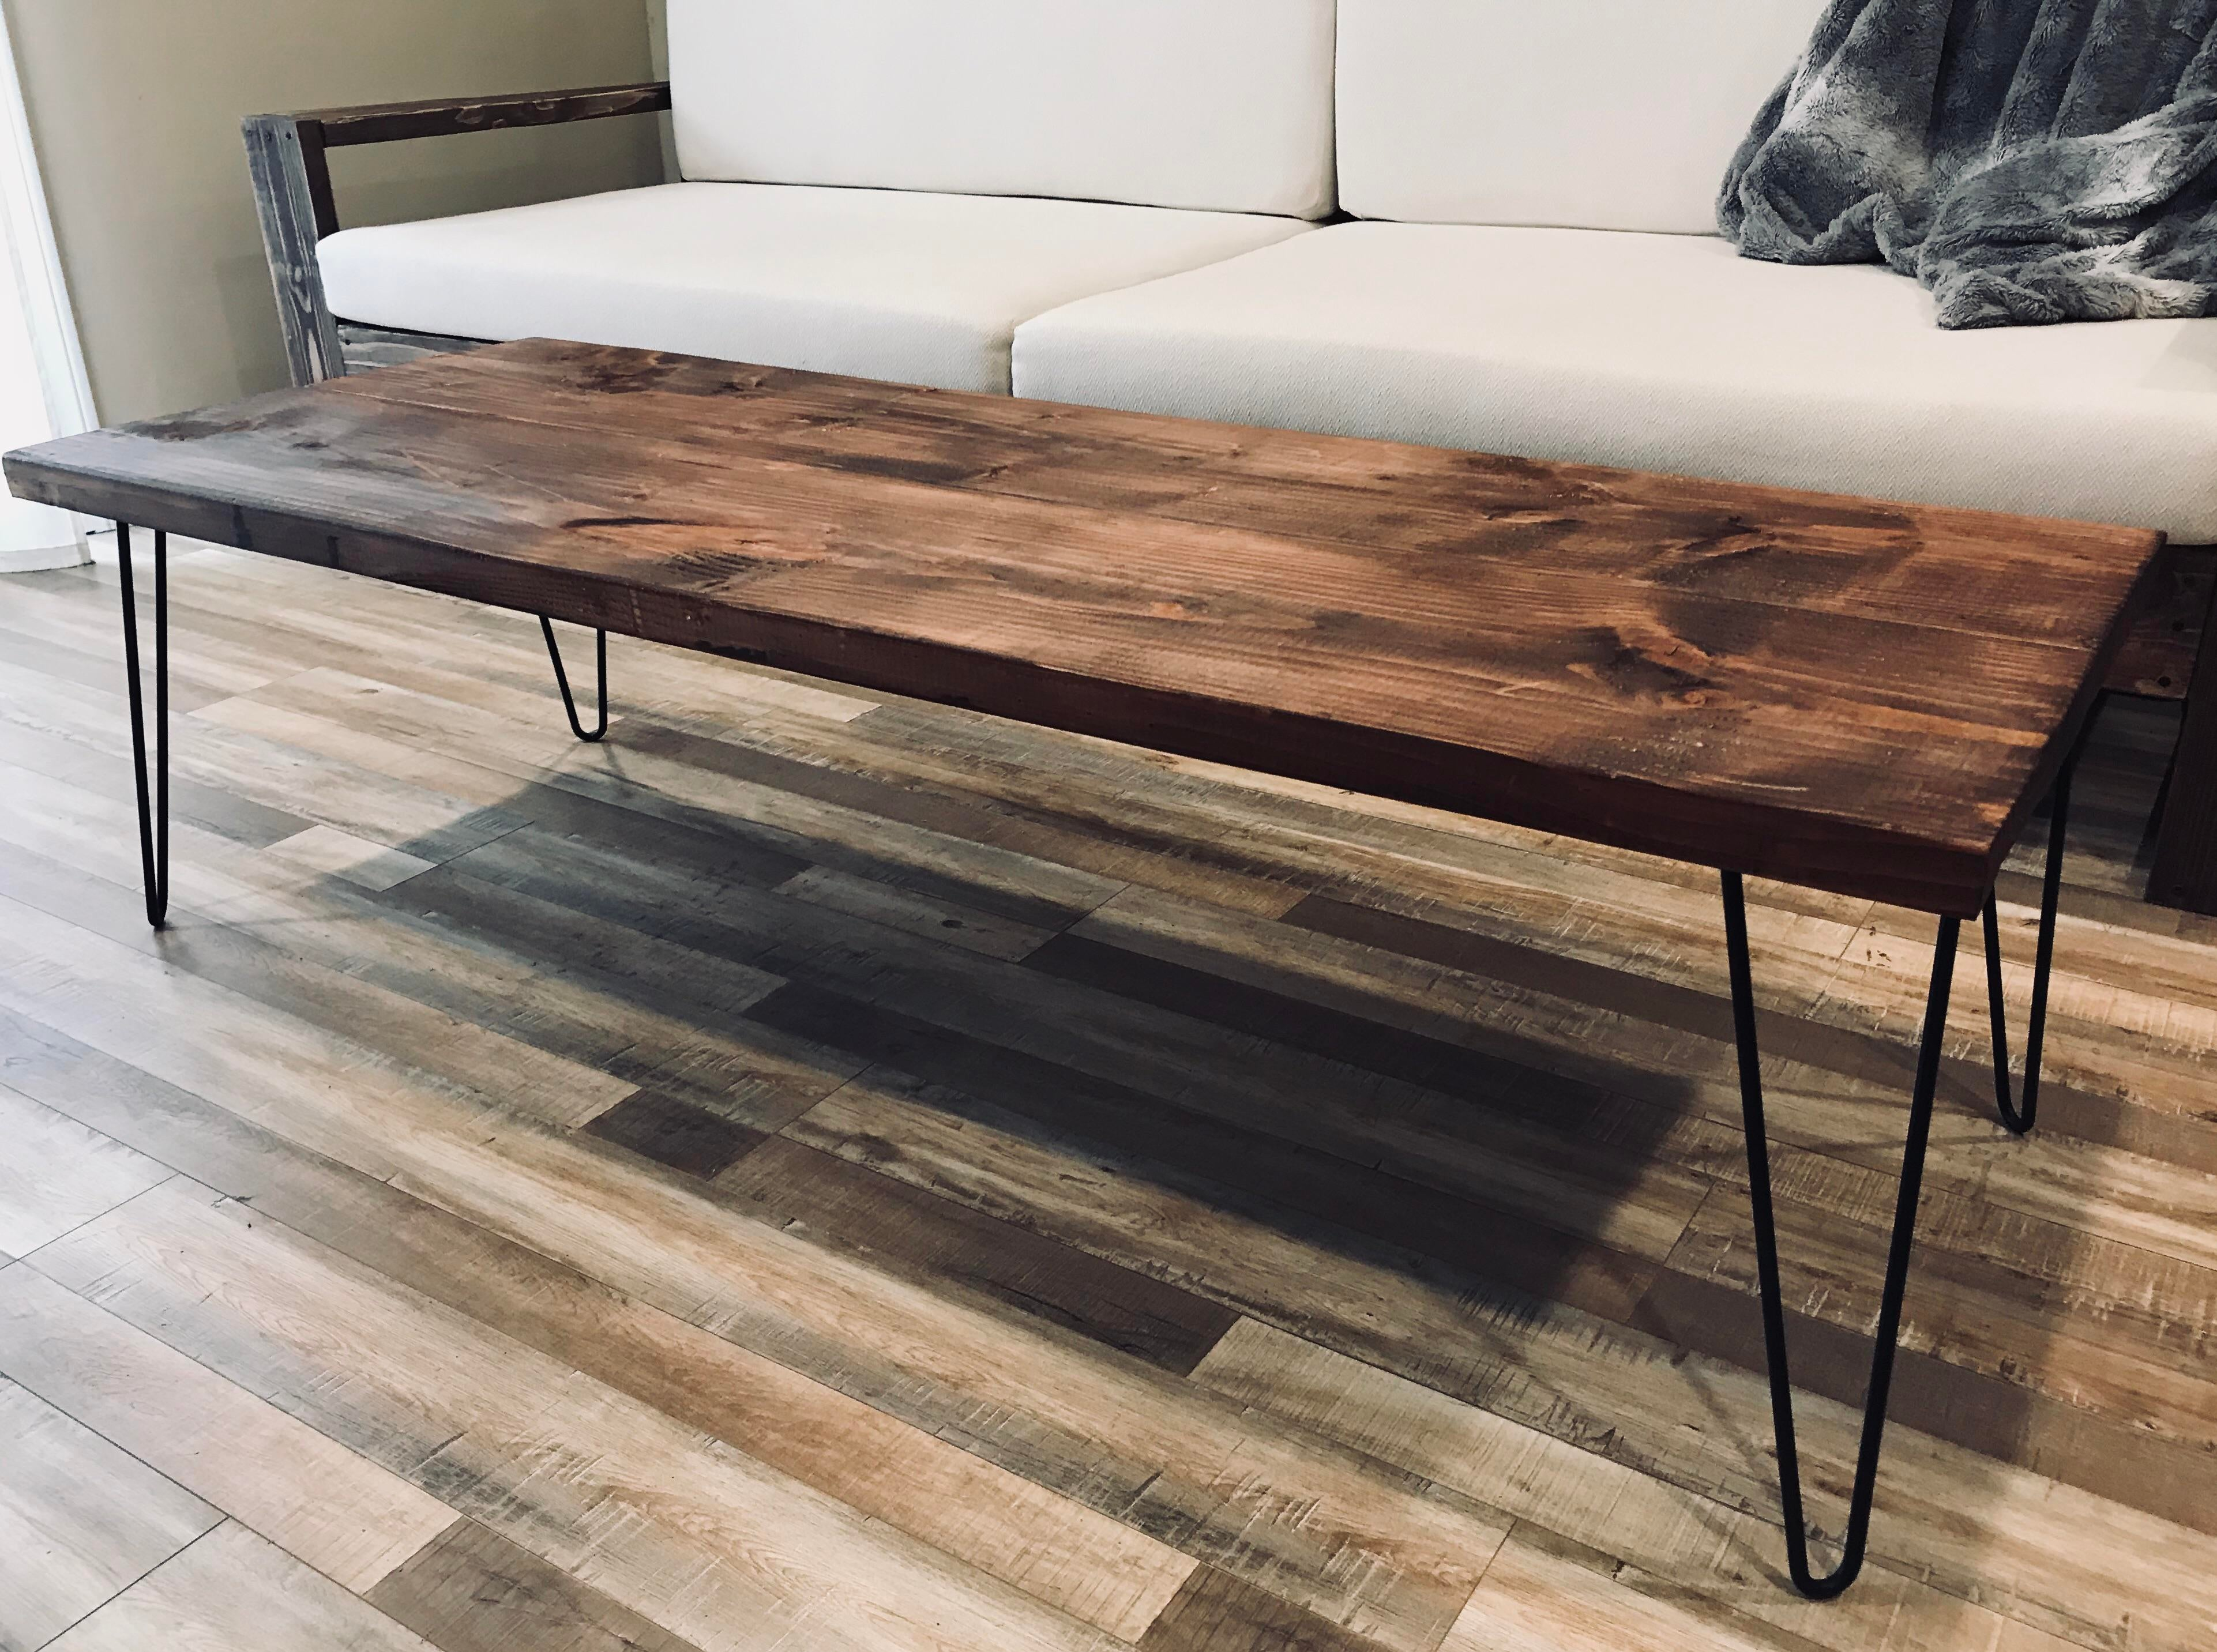 Handcrafted Modern Rustic Coffee Table With Hairpin Legs. Made In The 2010s